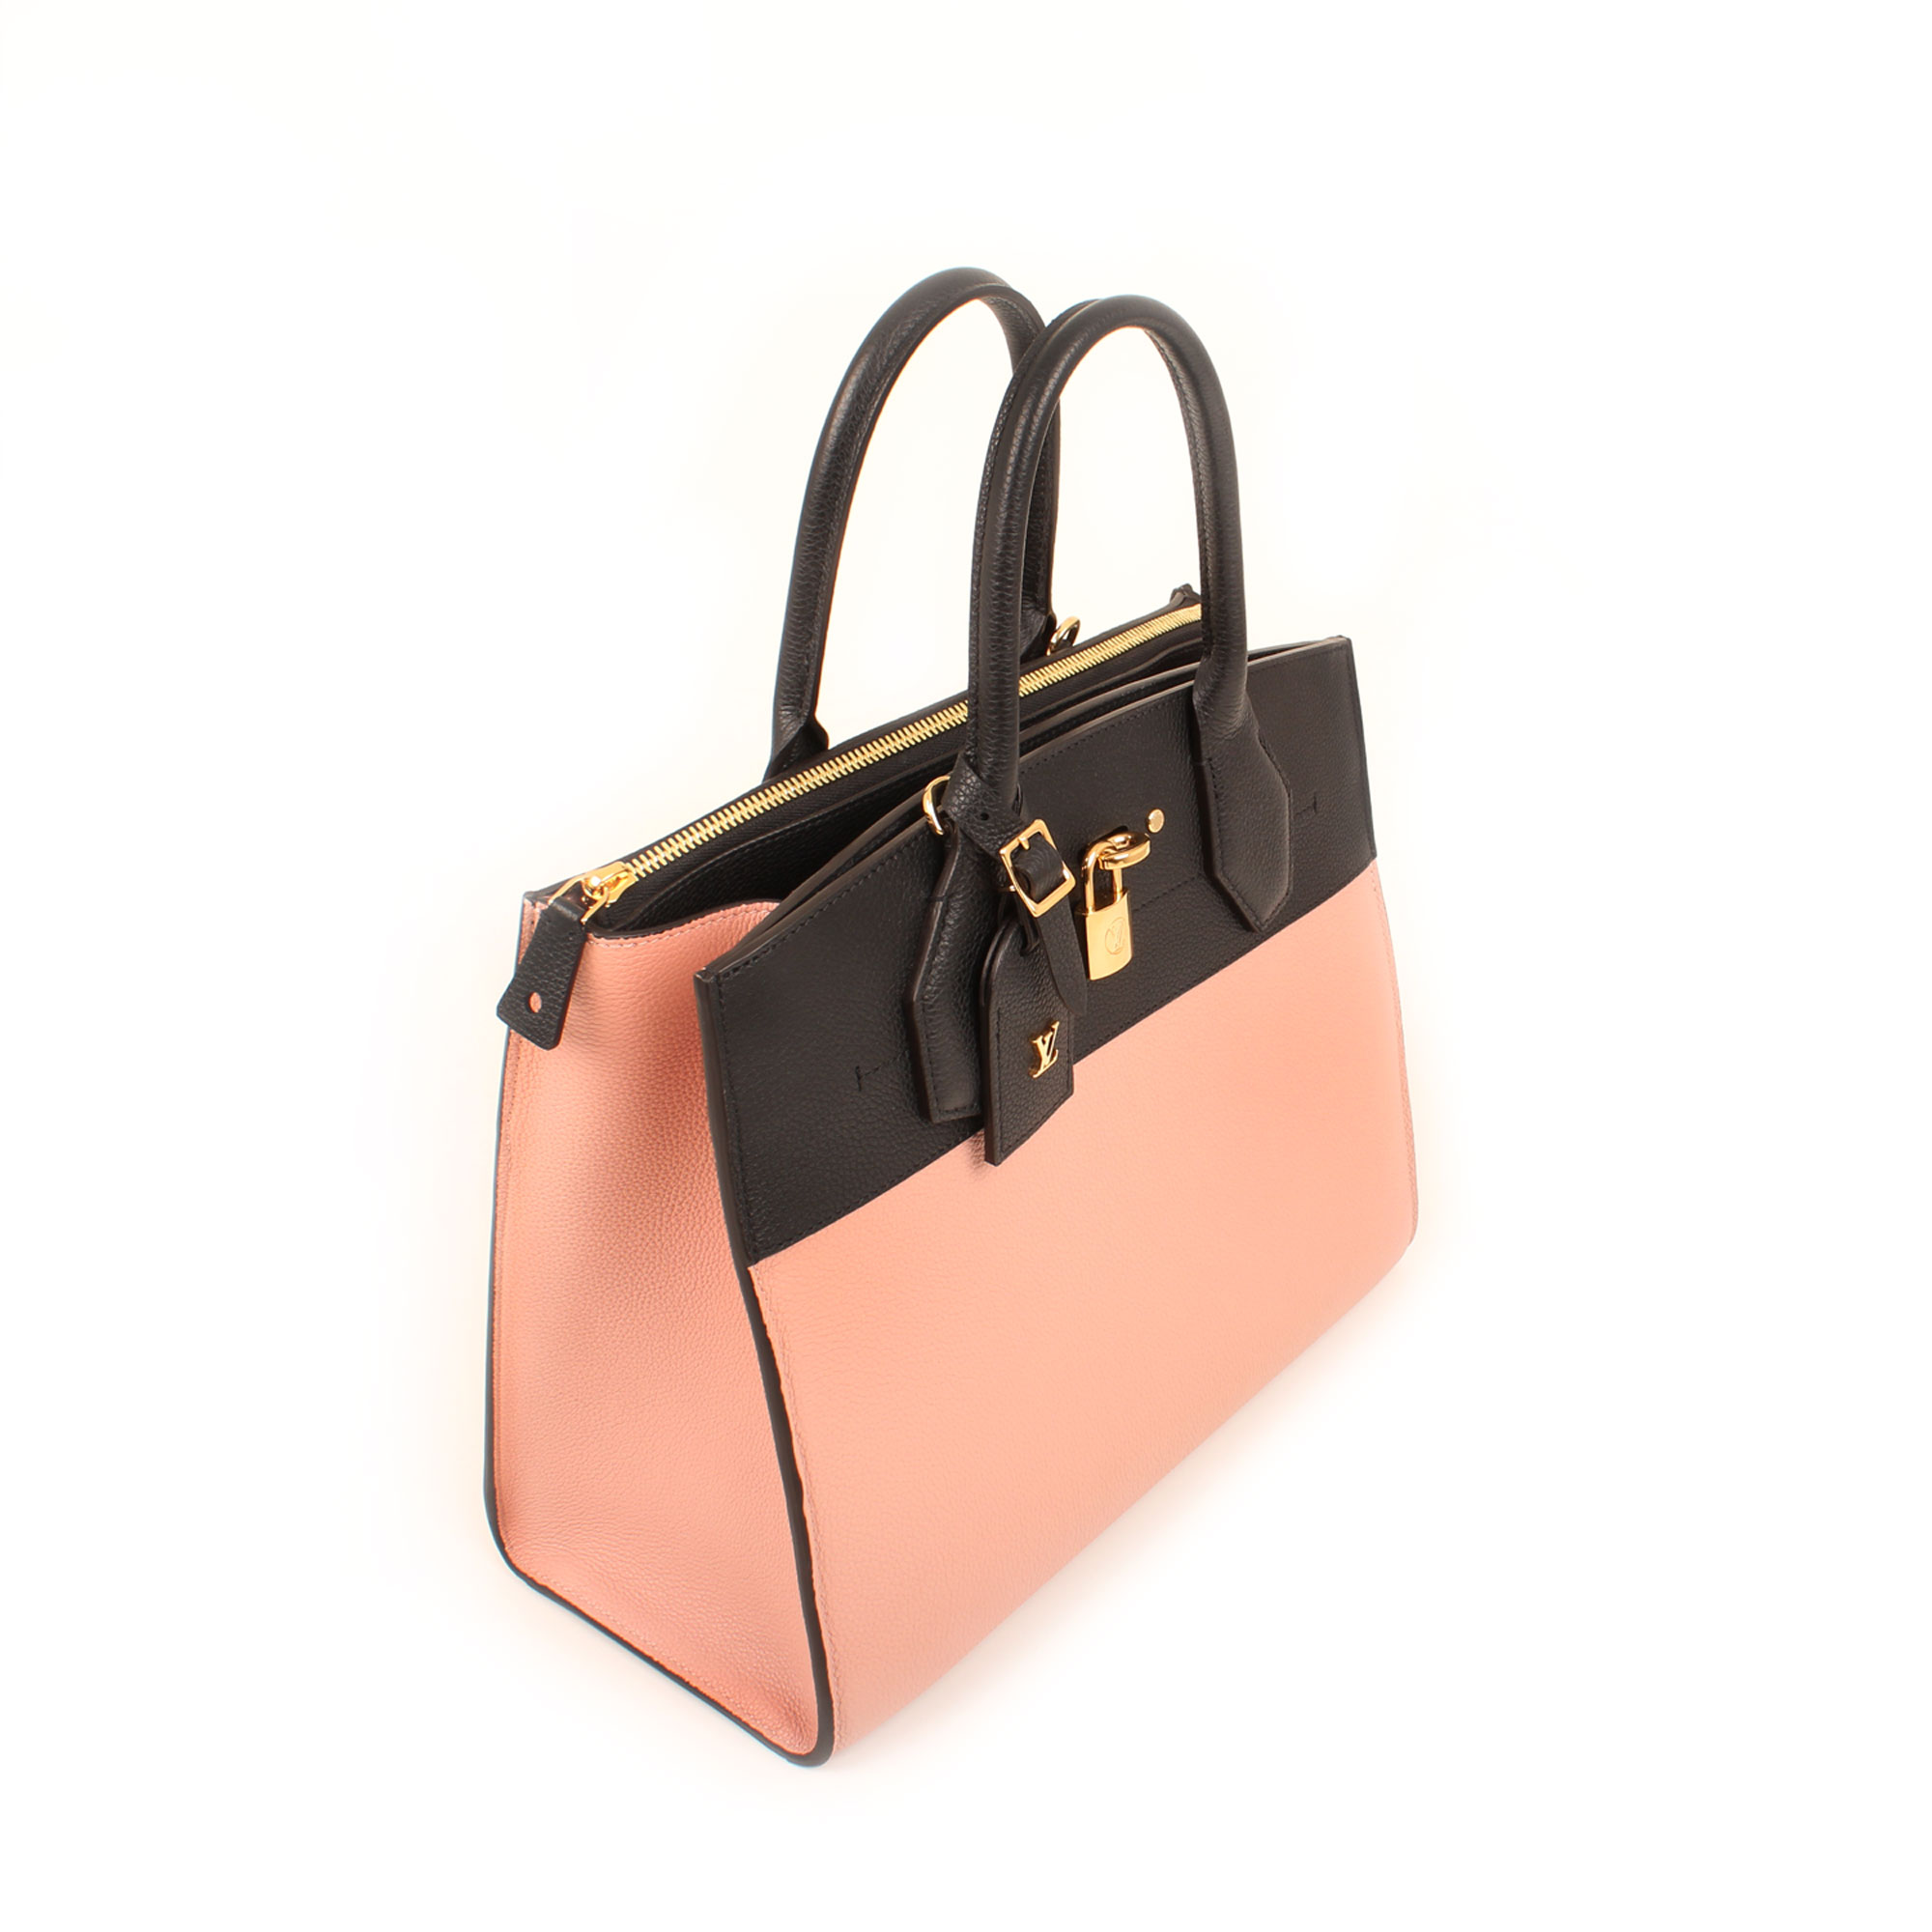 Imagen general del bolso louis vuitton city steamer mm magnolia